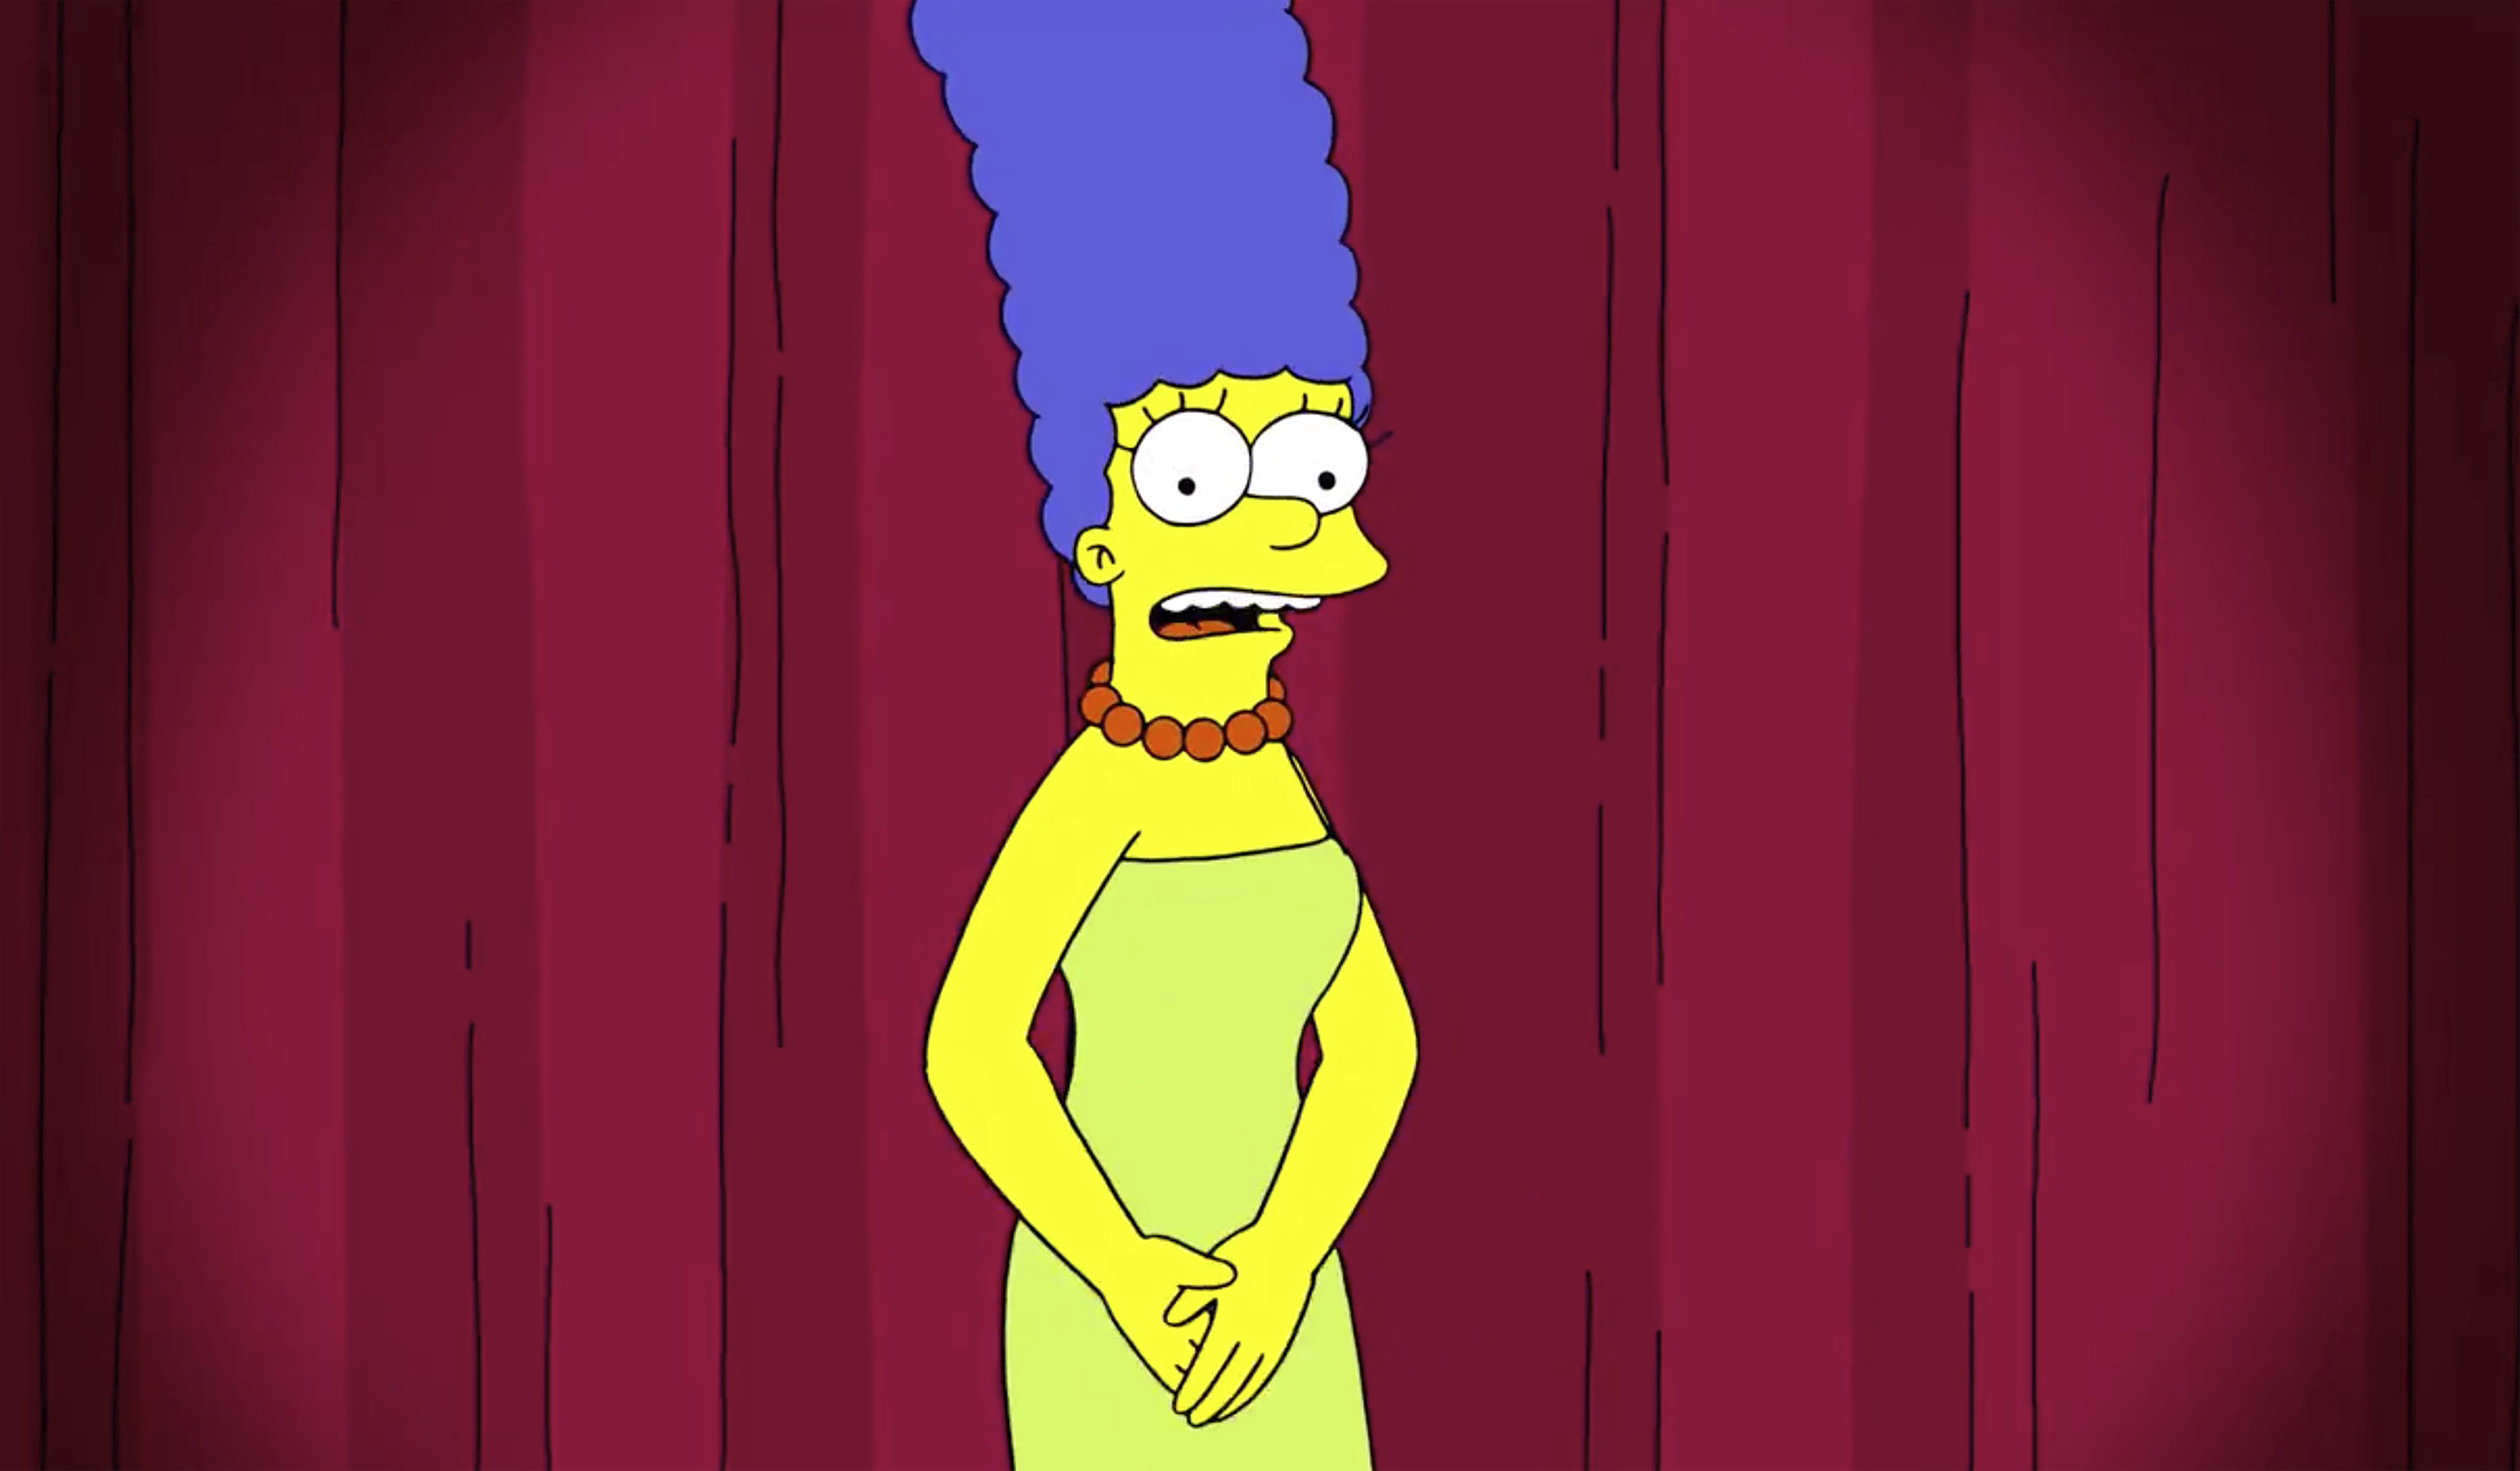 Marge Simpson Uses Her Voice To Call Out Trump Adviser Kget 17 A voicy / sound effect of 'call an ambulance! marge simpson uses her voice to call out trump adviser kget 17